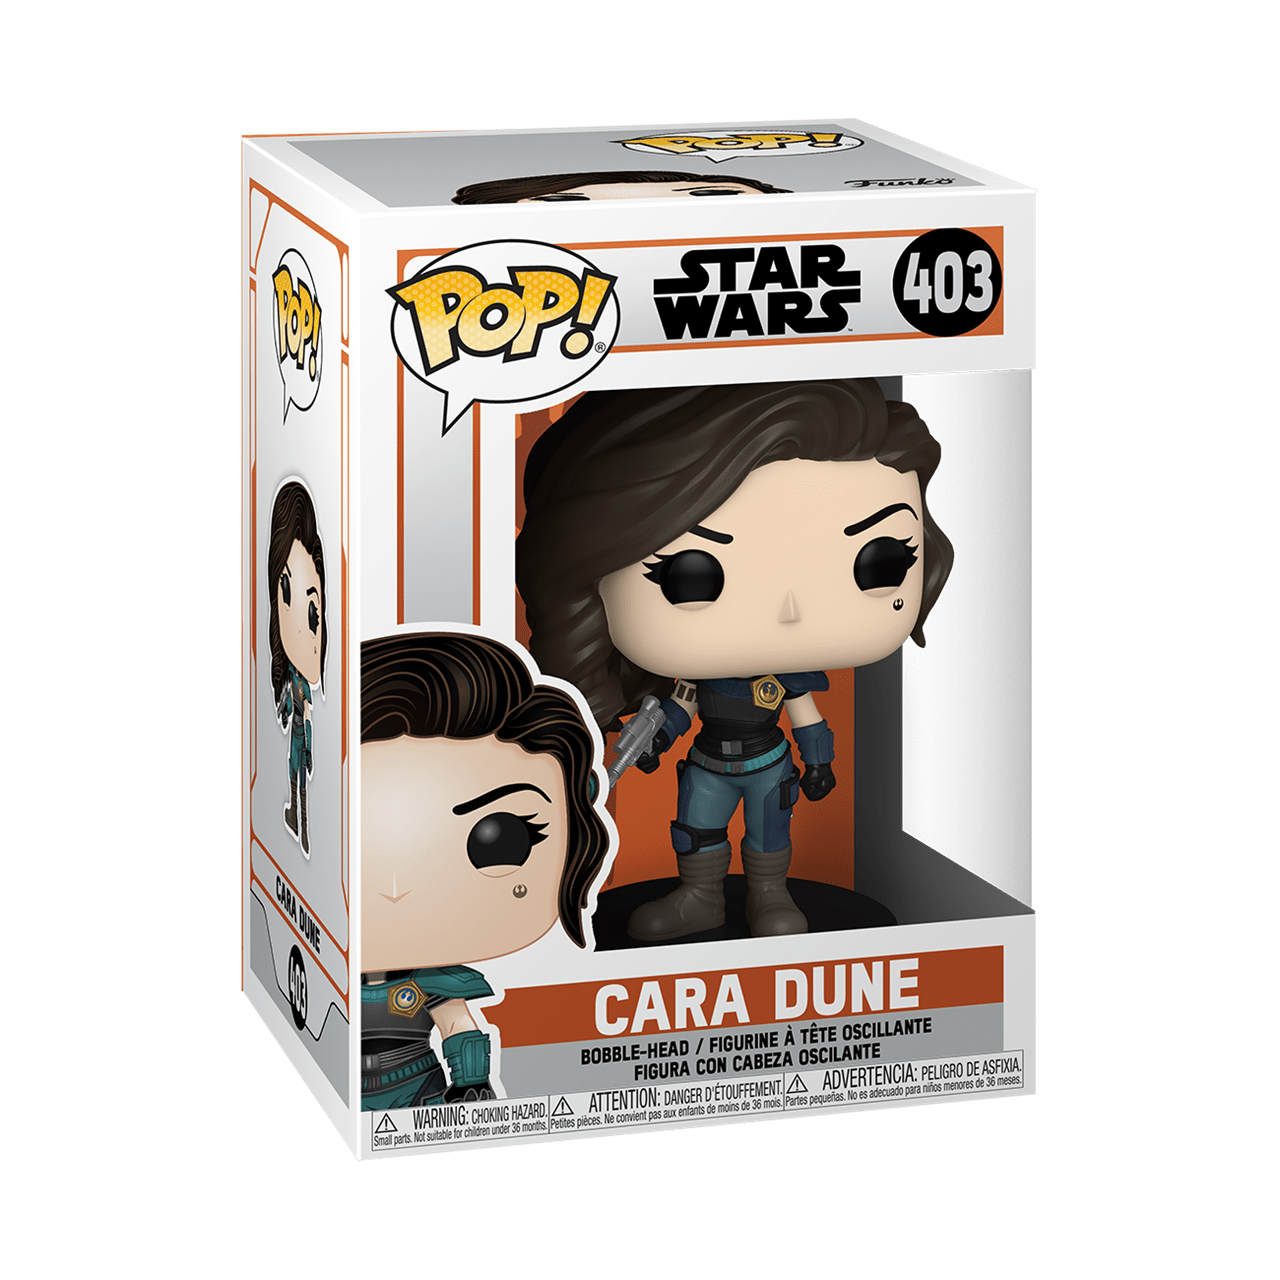 The Mandalorian: Cara Dune (403) Star Wars Pop Vinyl - 2